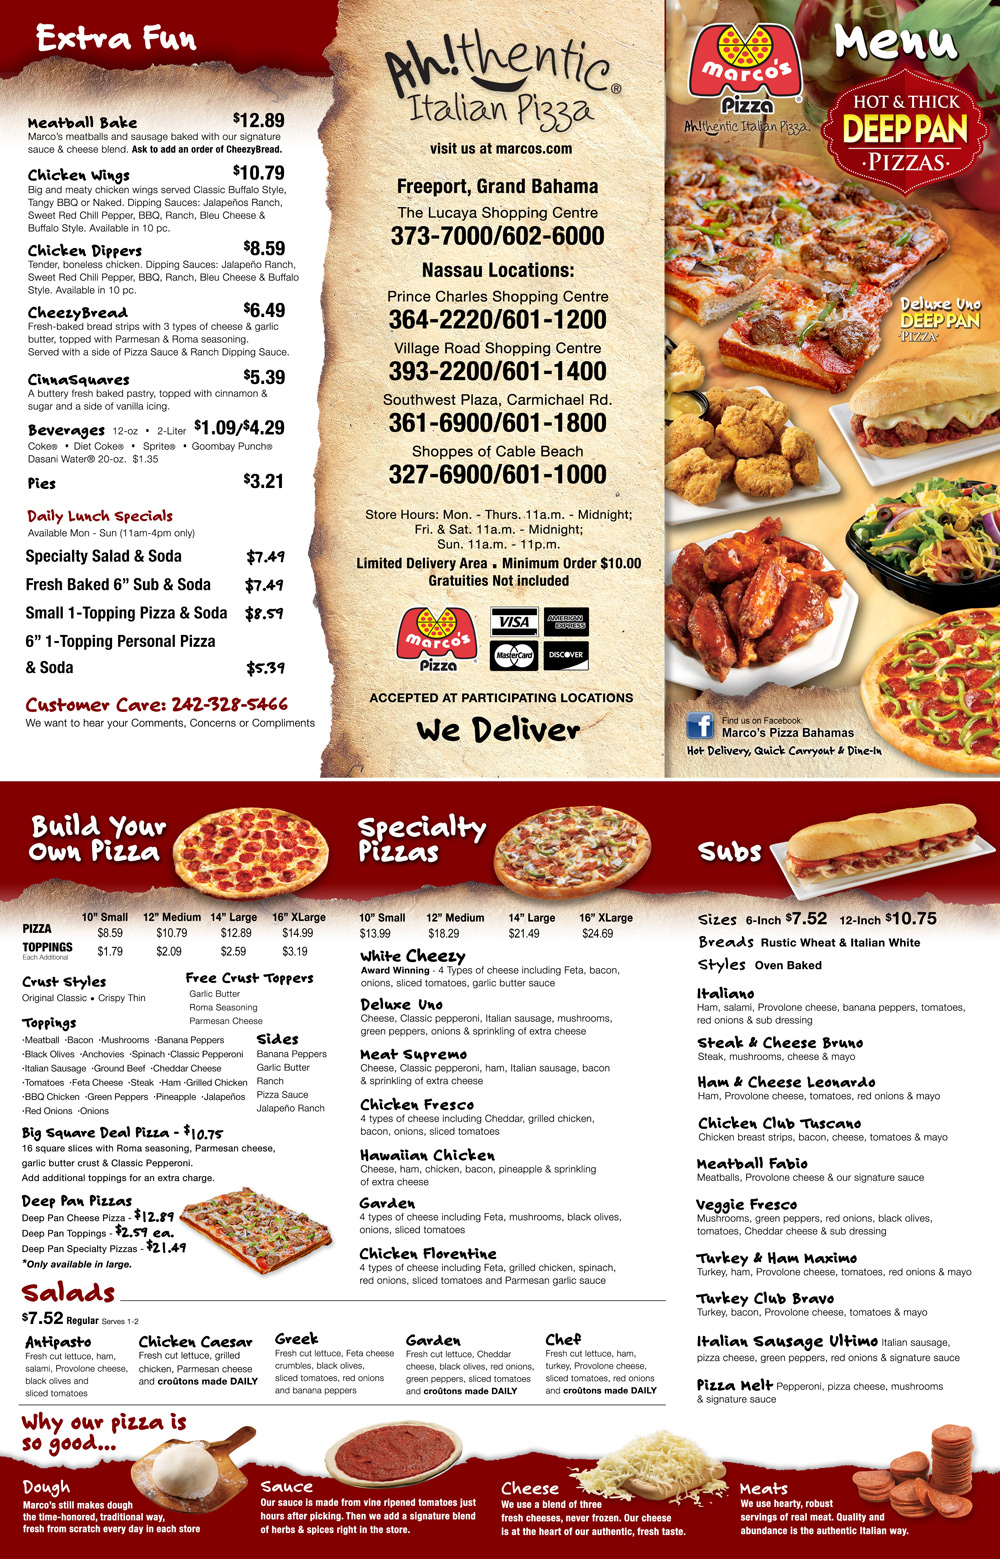 Marco's Pizza is a pizza restaurant chain that specialized in Italian-American cuisine, but primarily pizzas. If you're used to eating at bigger pizza restaurant joints, you will find that Marco's Pizza prices are a bit more expensive than that.